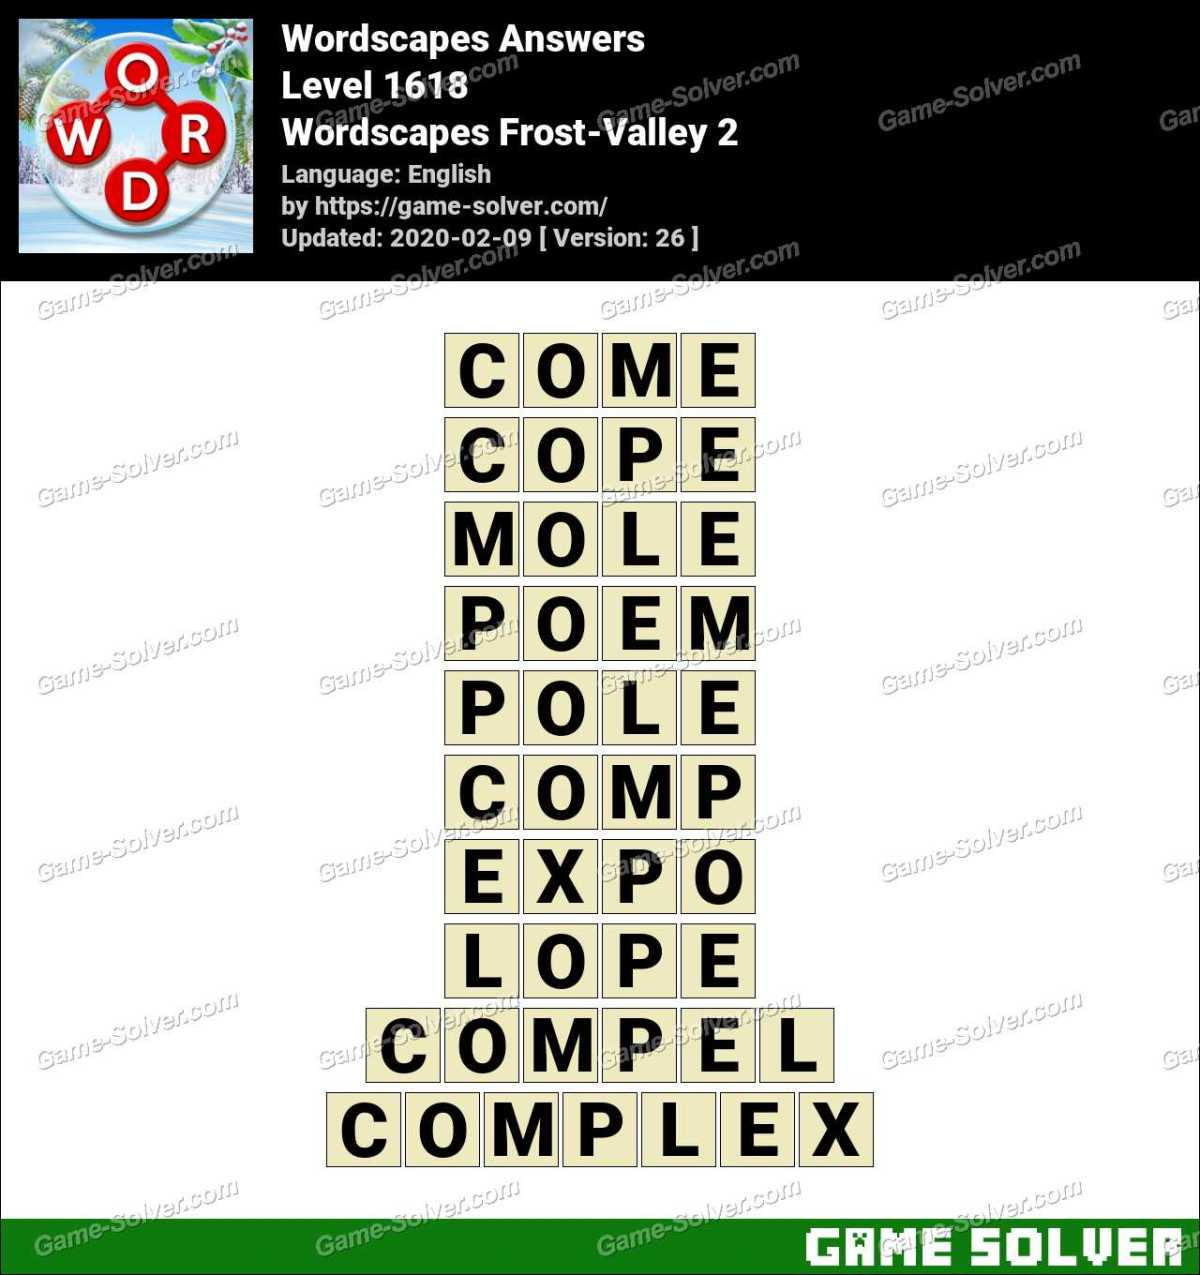 Wordscapes Frost-Valley 2 Answers